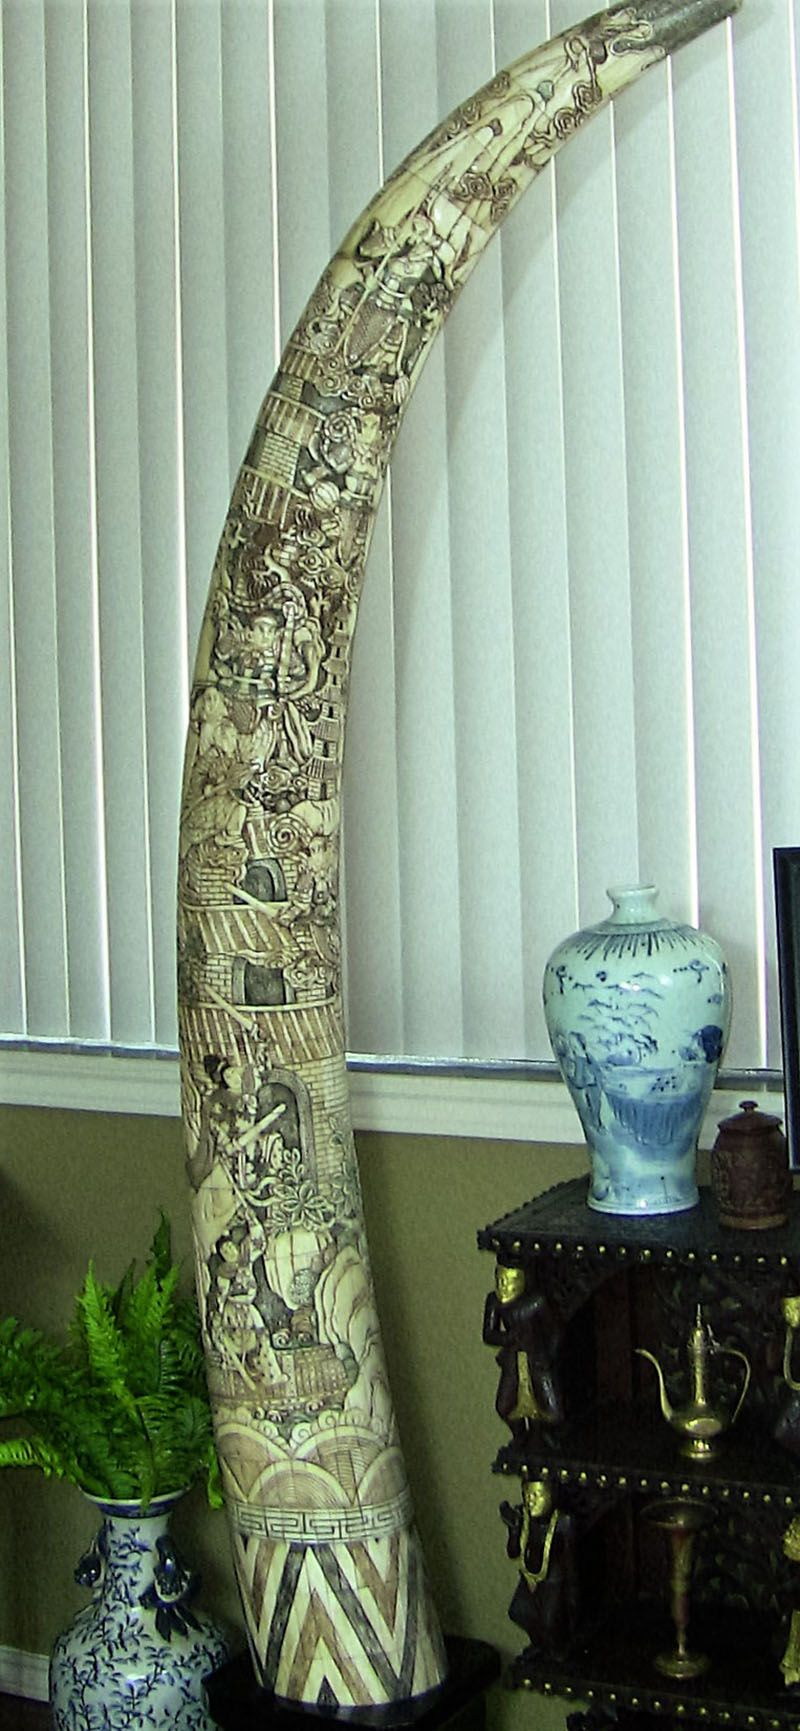 Elephant ivory carvings for sale